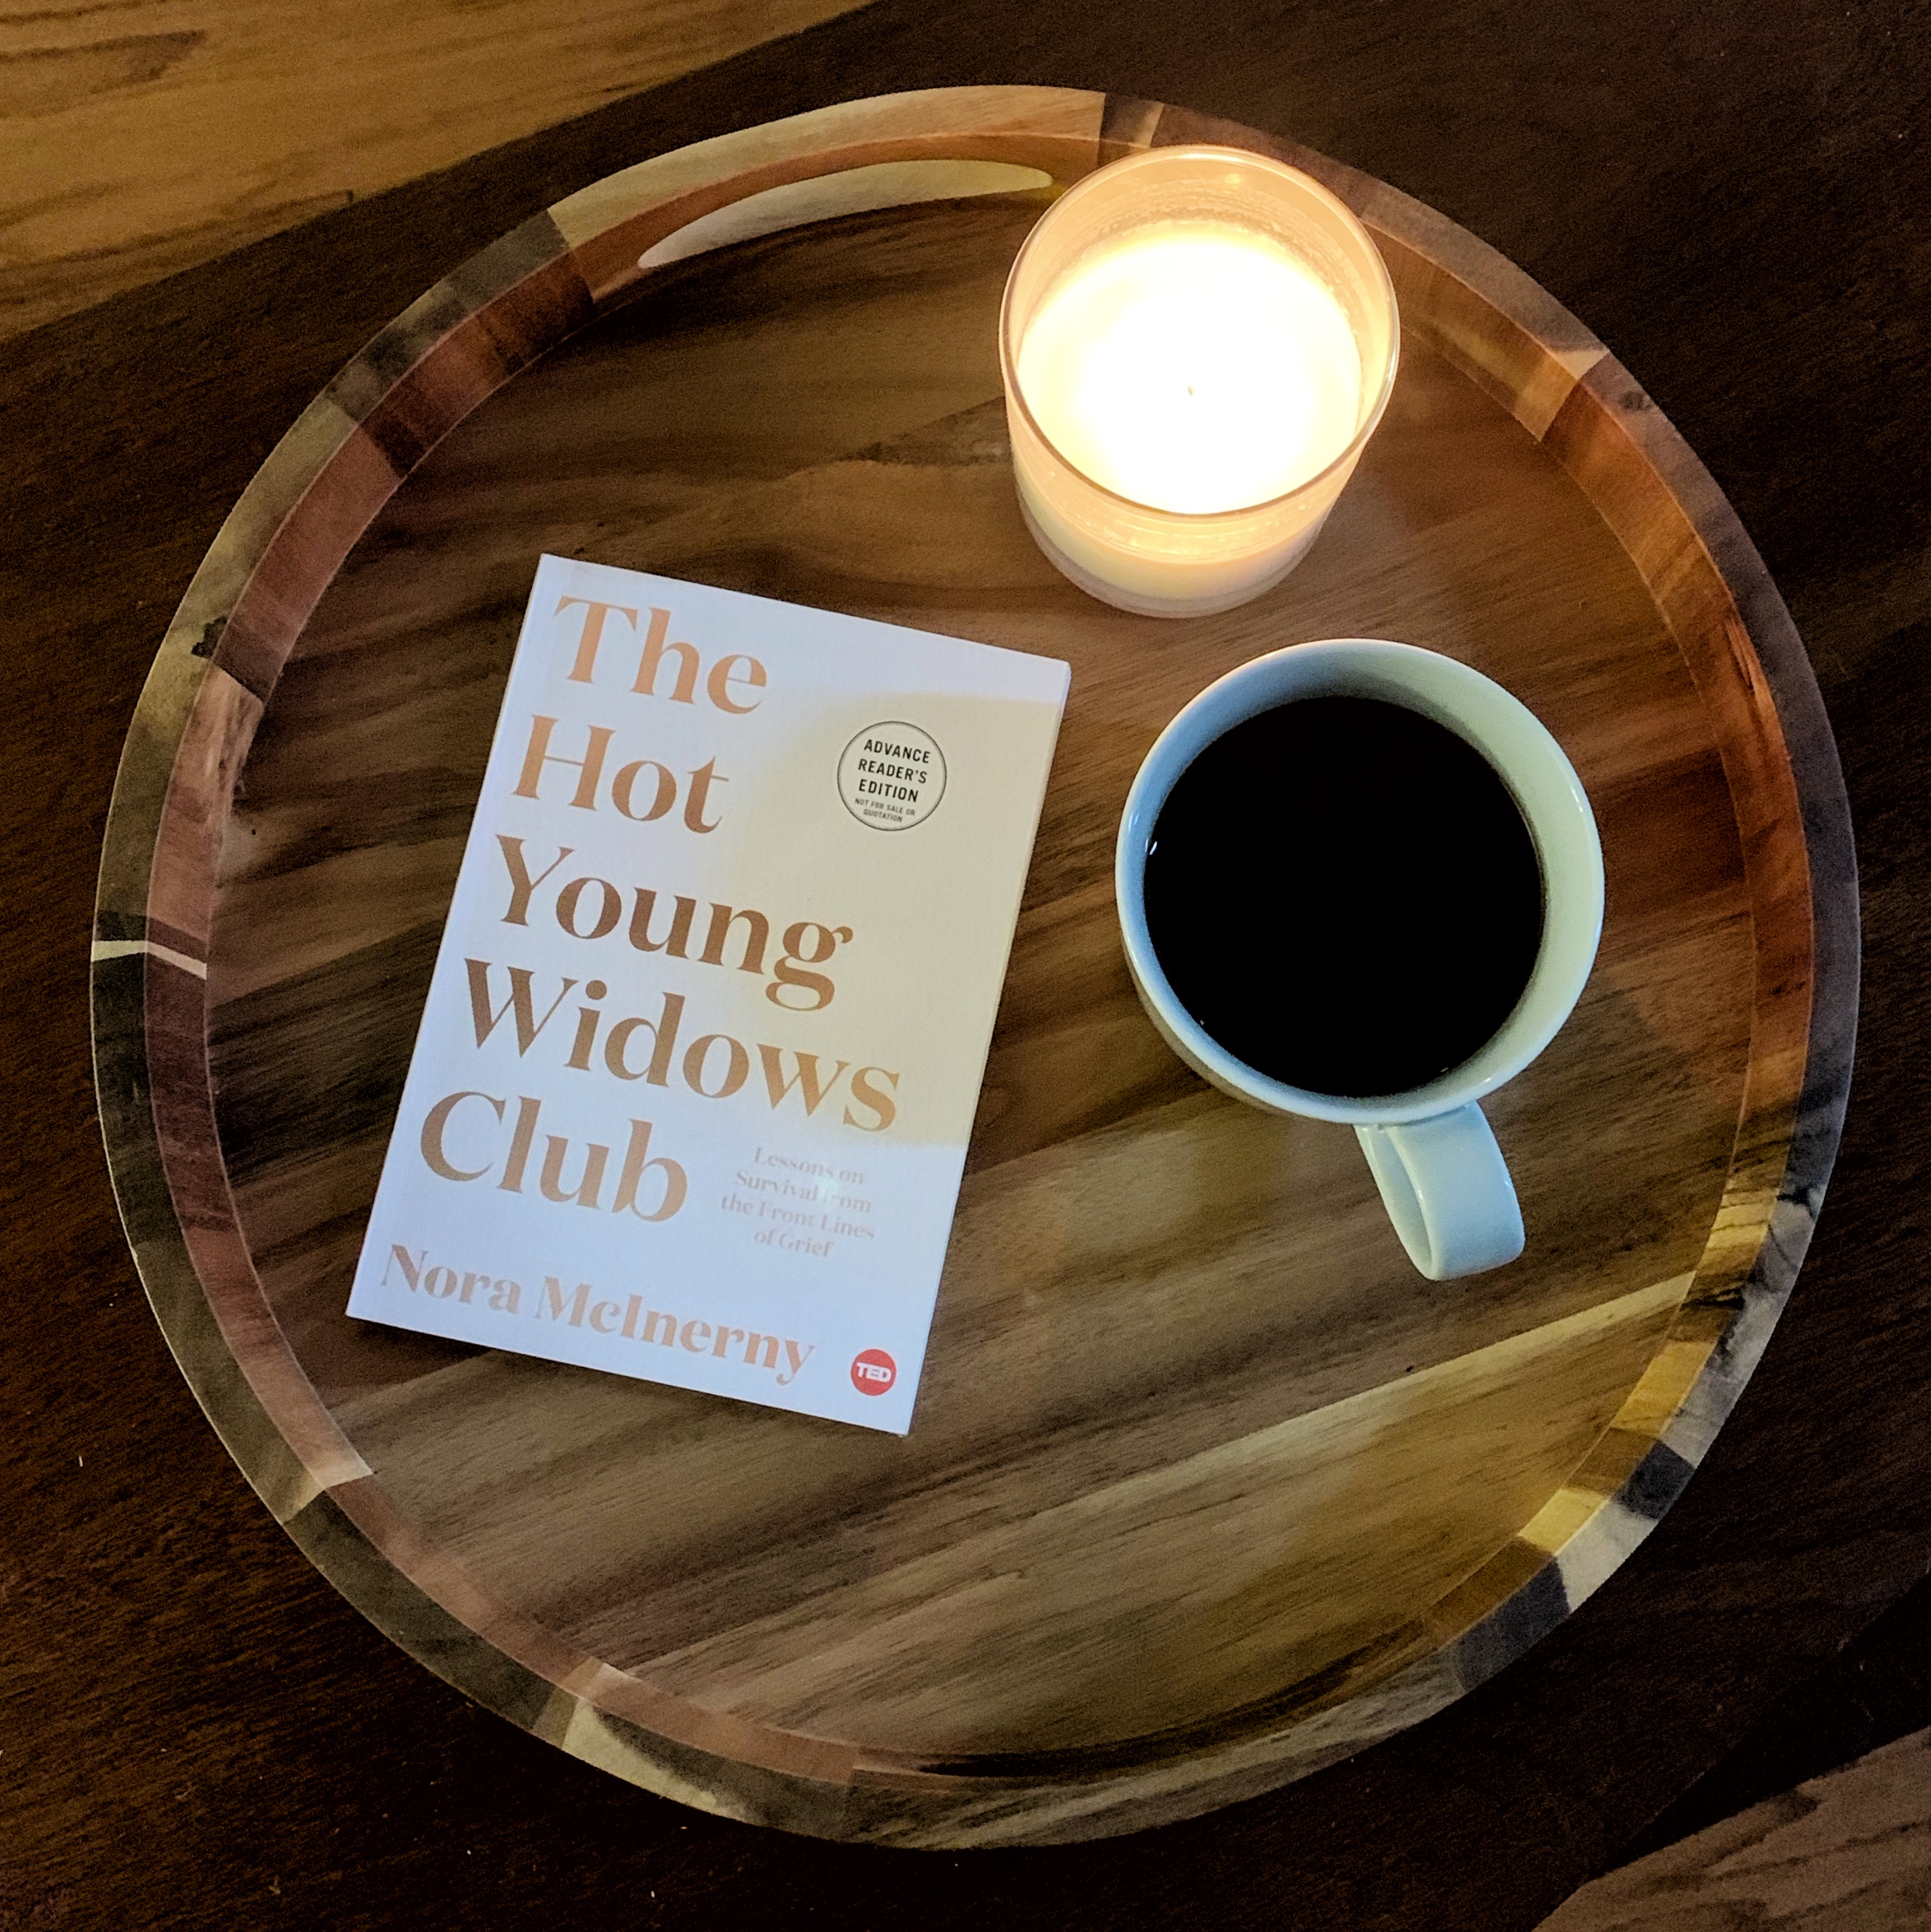 copy of hot young widows club book with a candle and a coffee sitting on a tray